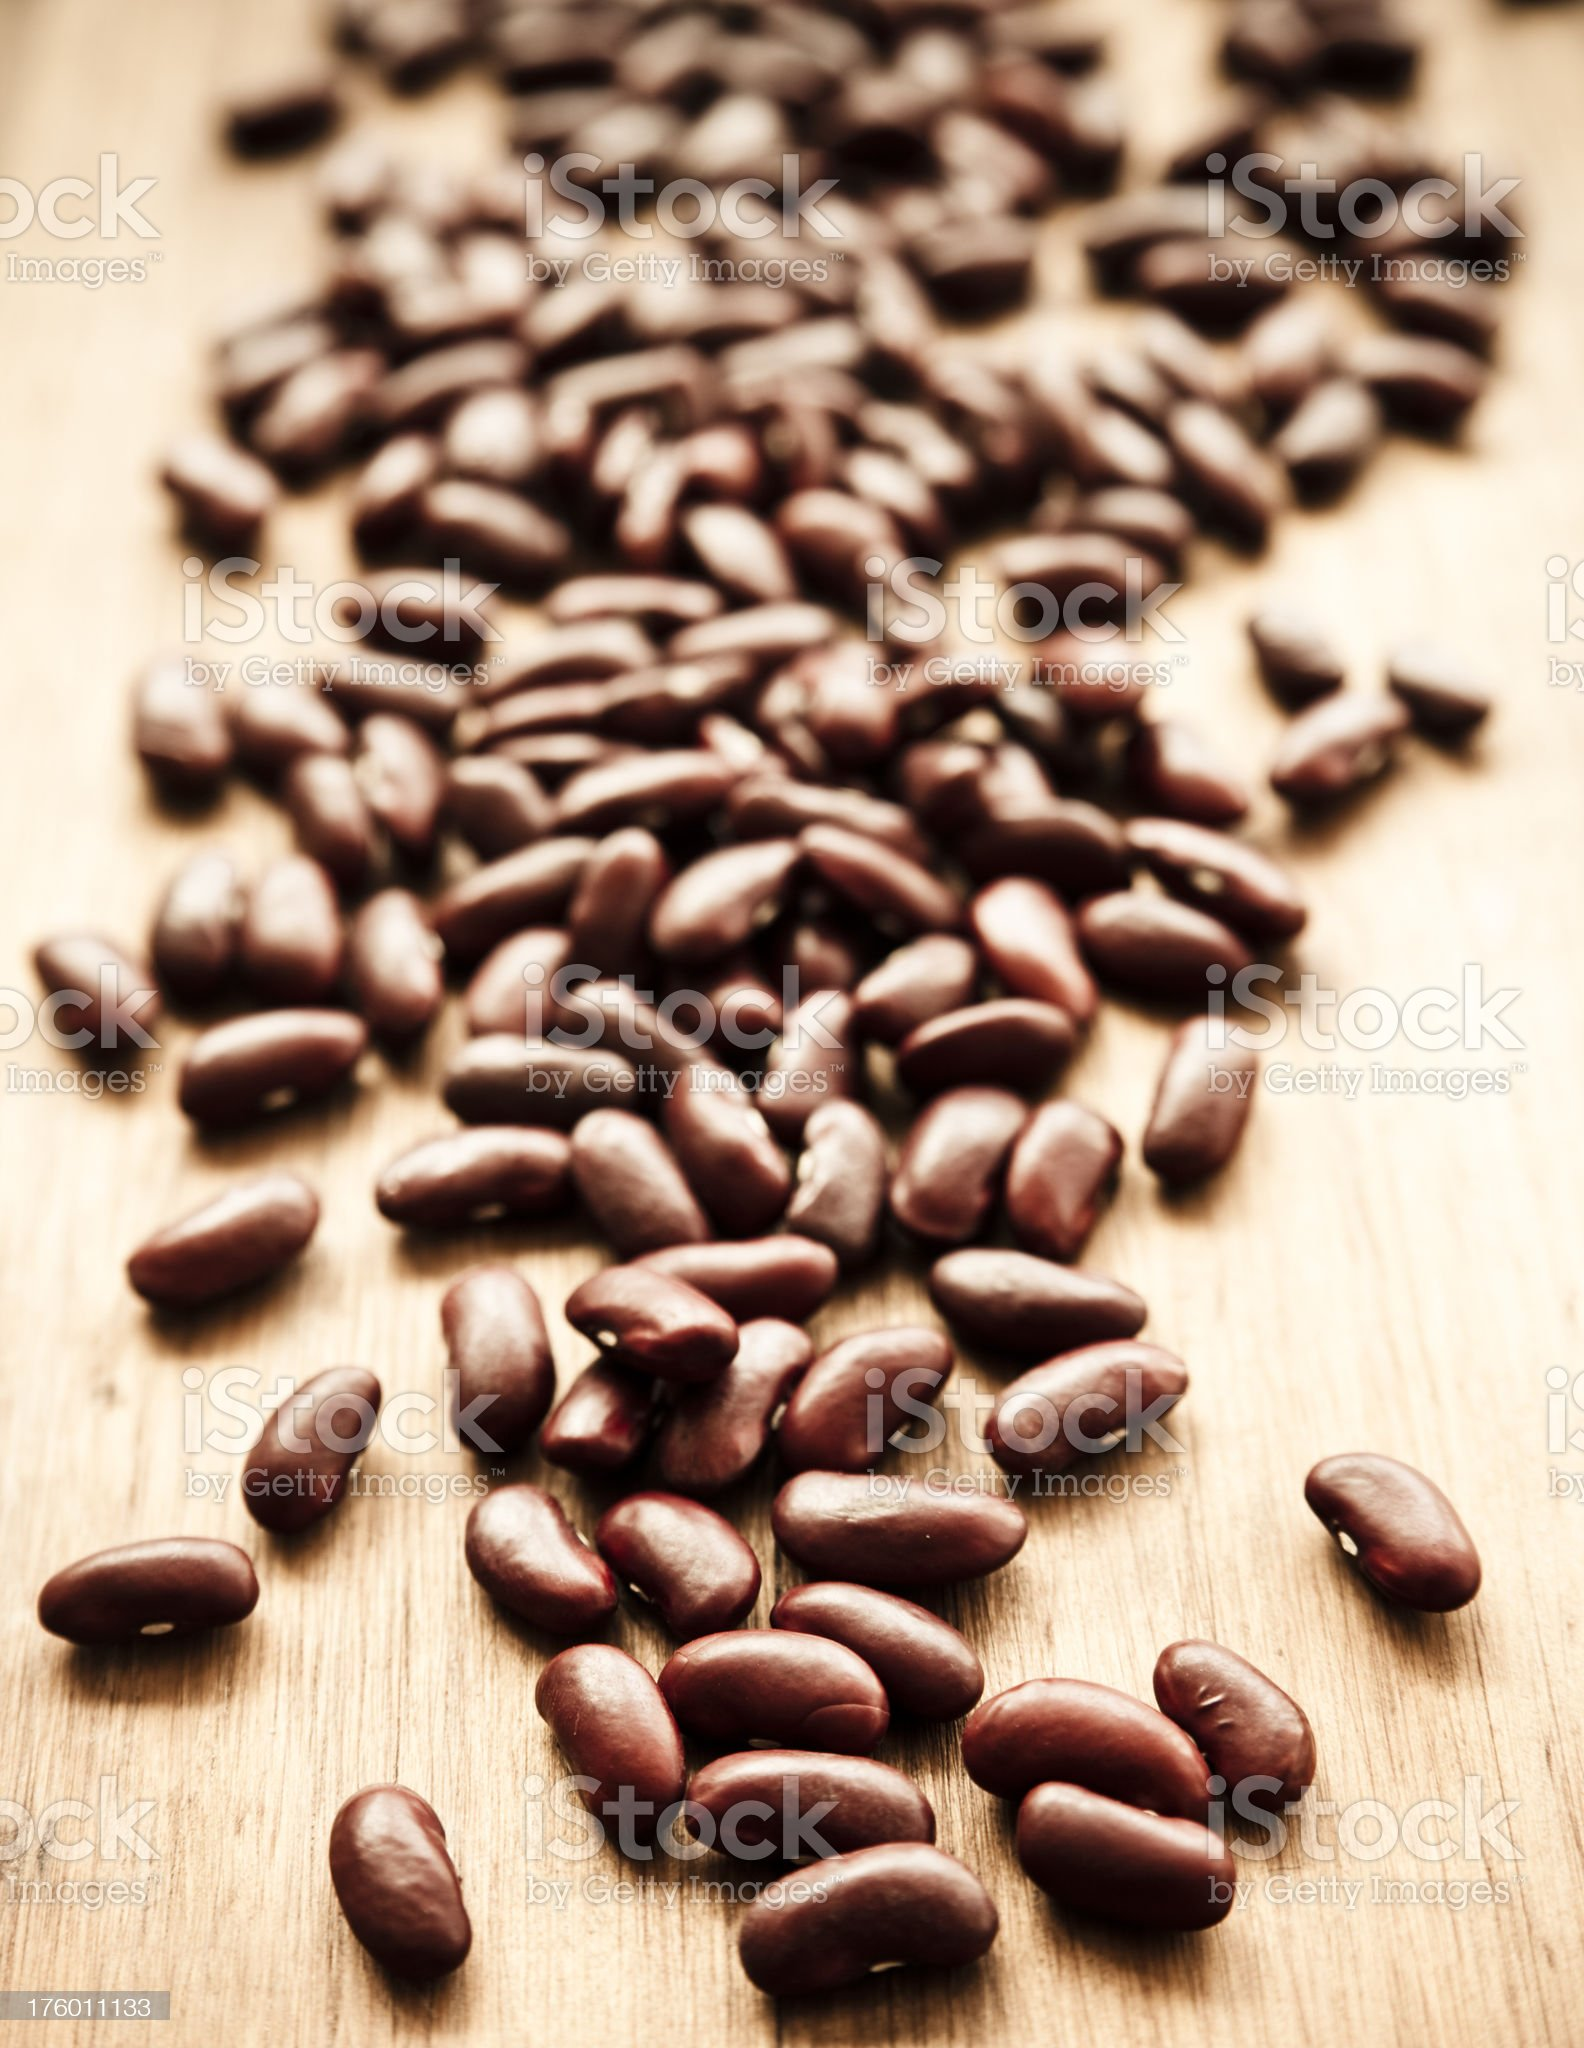 Kidney beans royalty-free stock photo